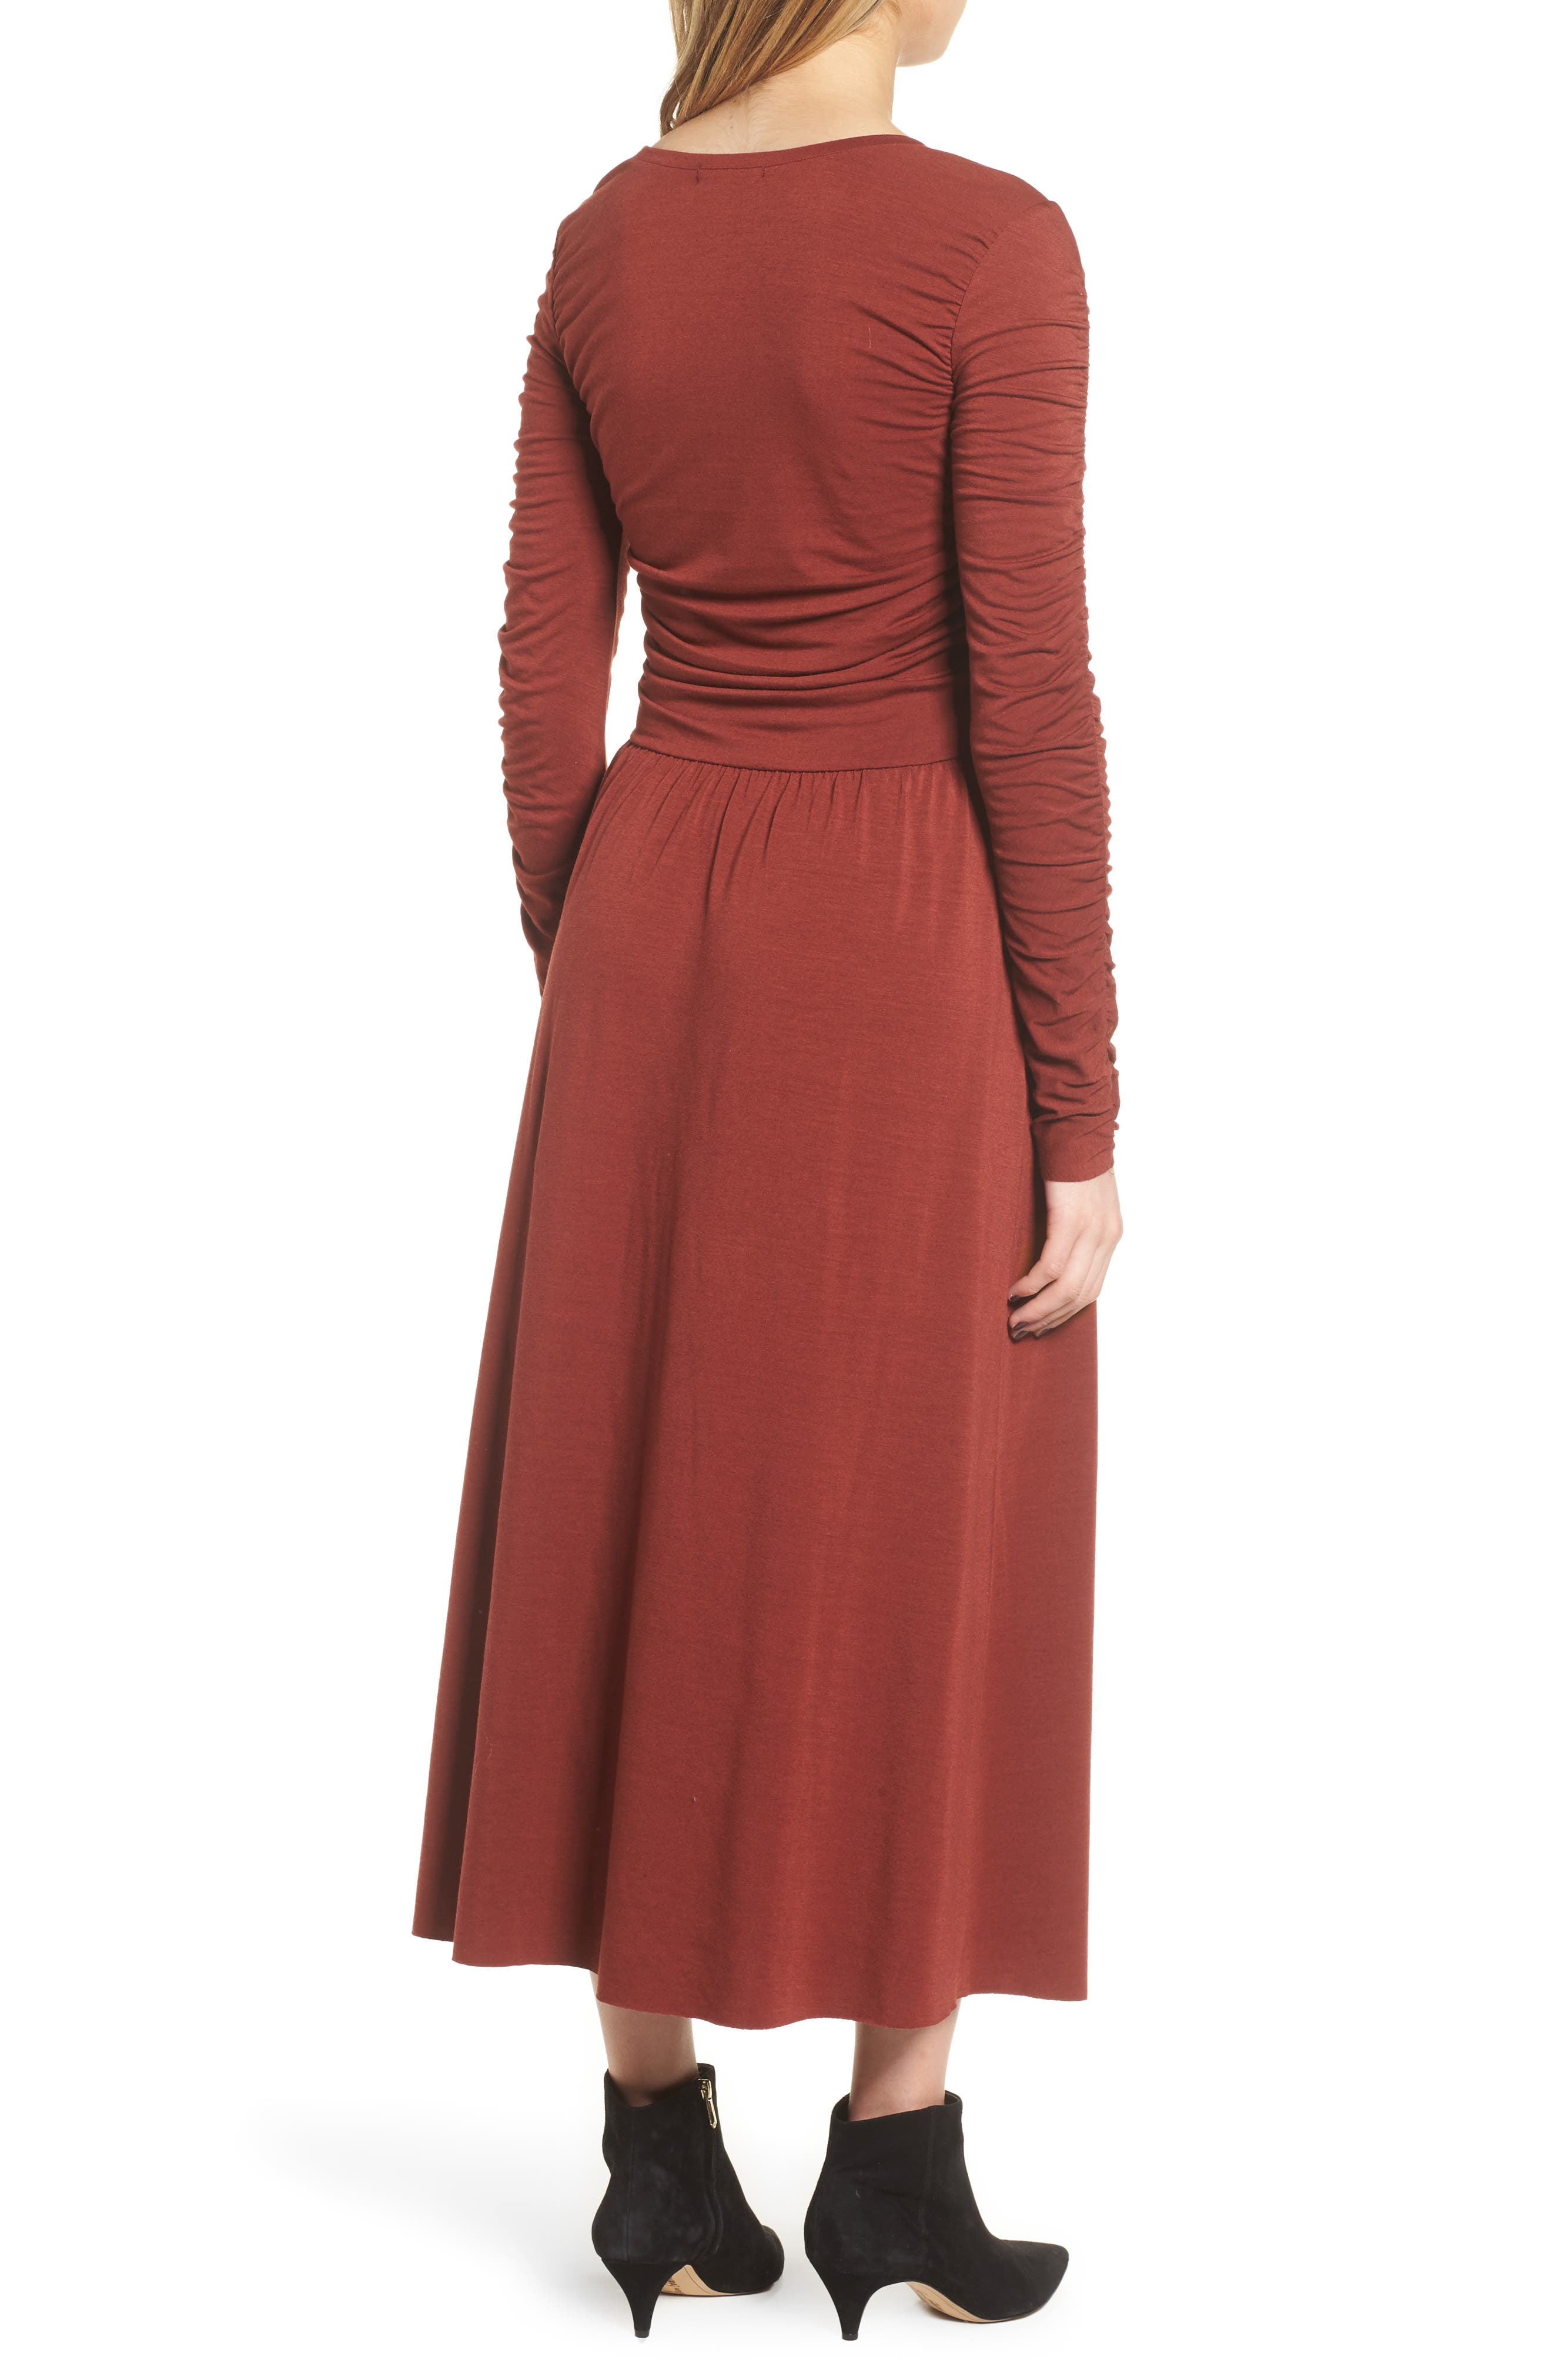 Ruched Jersey Knit Dress,                             Alternate thumbnail 2, color,                             200